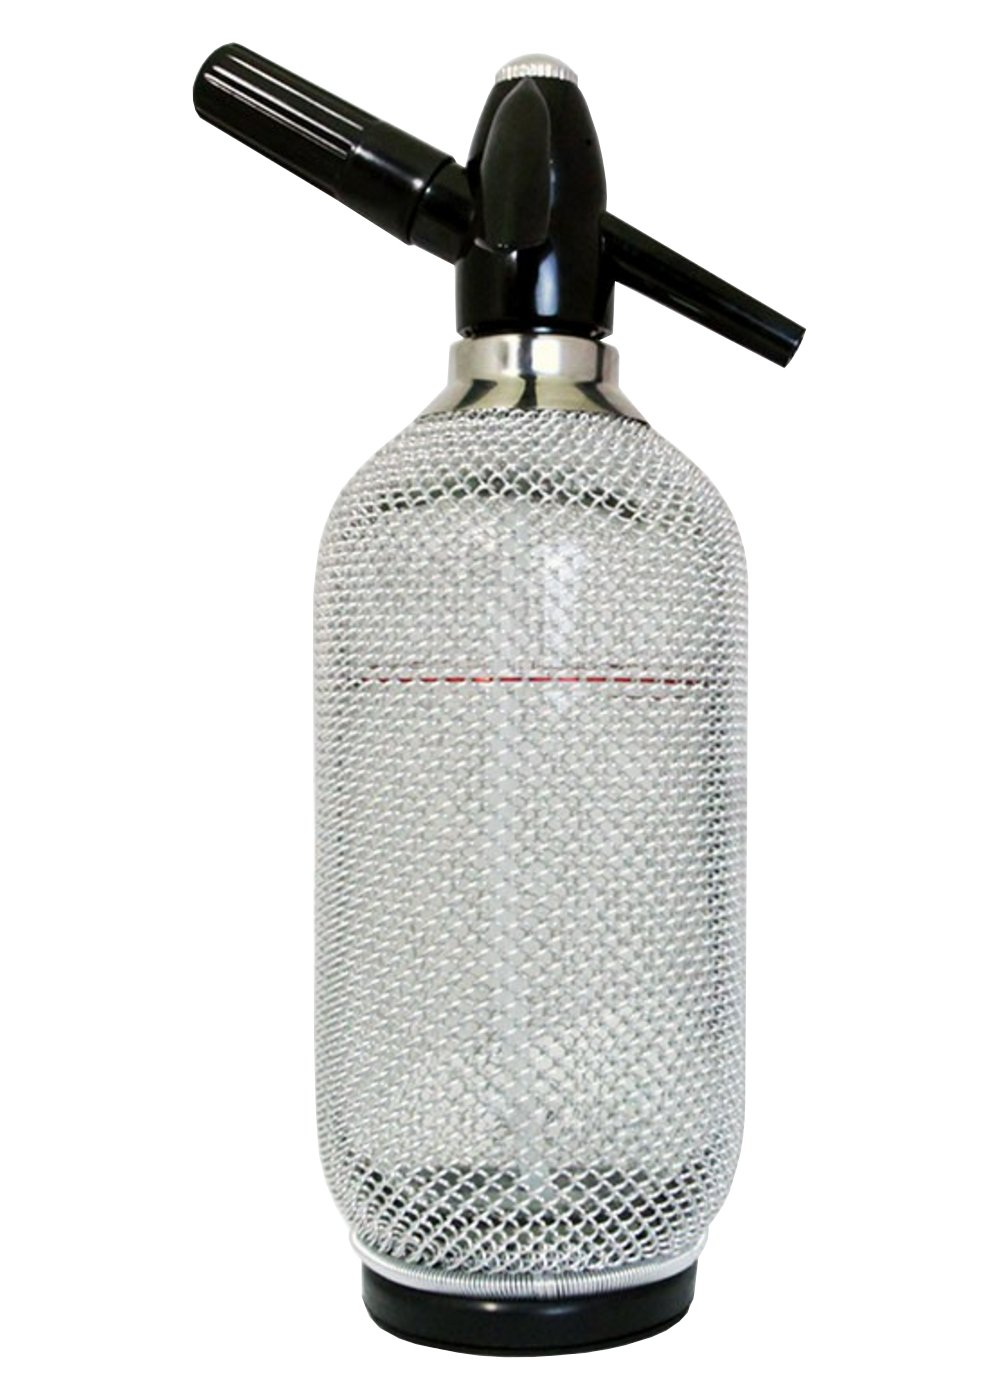 Premier Mixers Classic Glass Soda Siphon with Silver Mesh